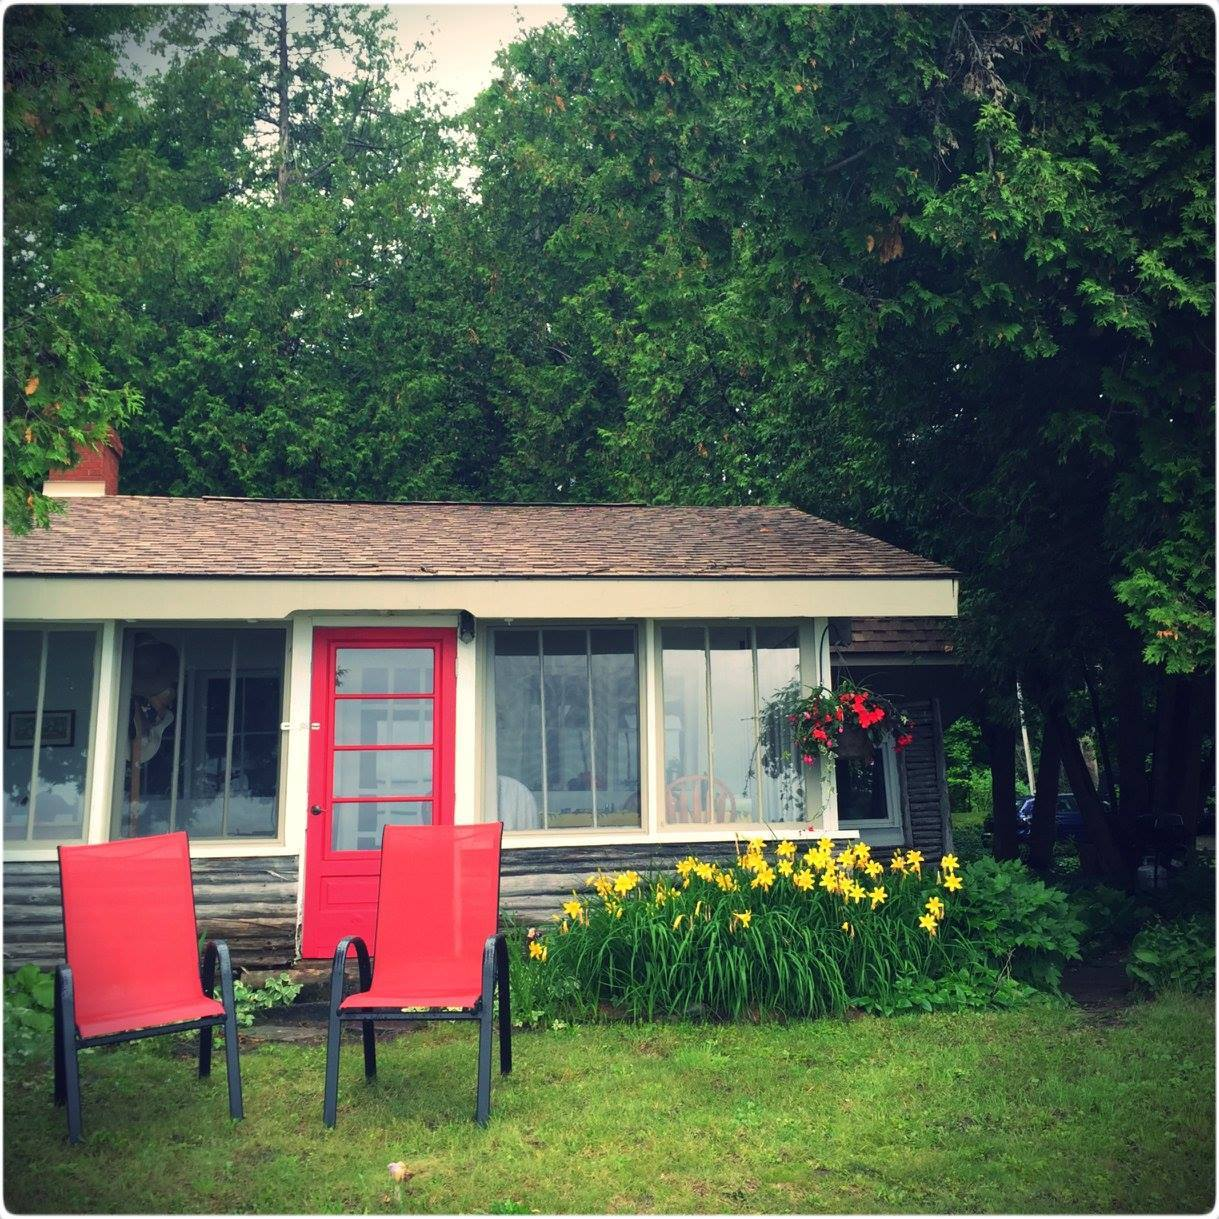 Cottage-B-red-chairs.jpg